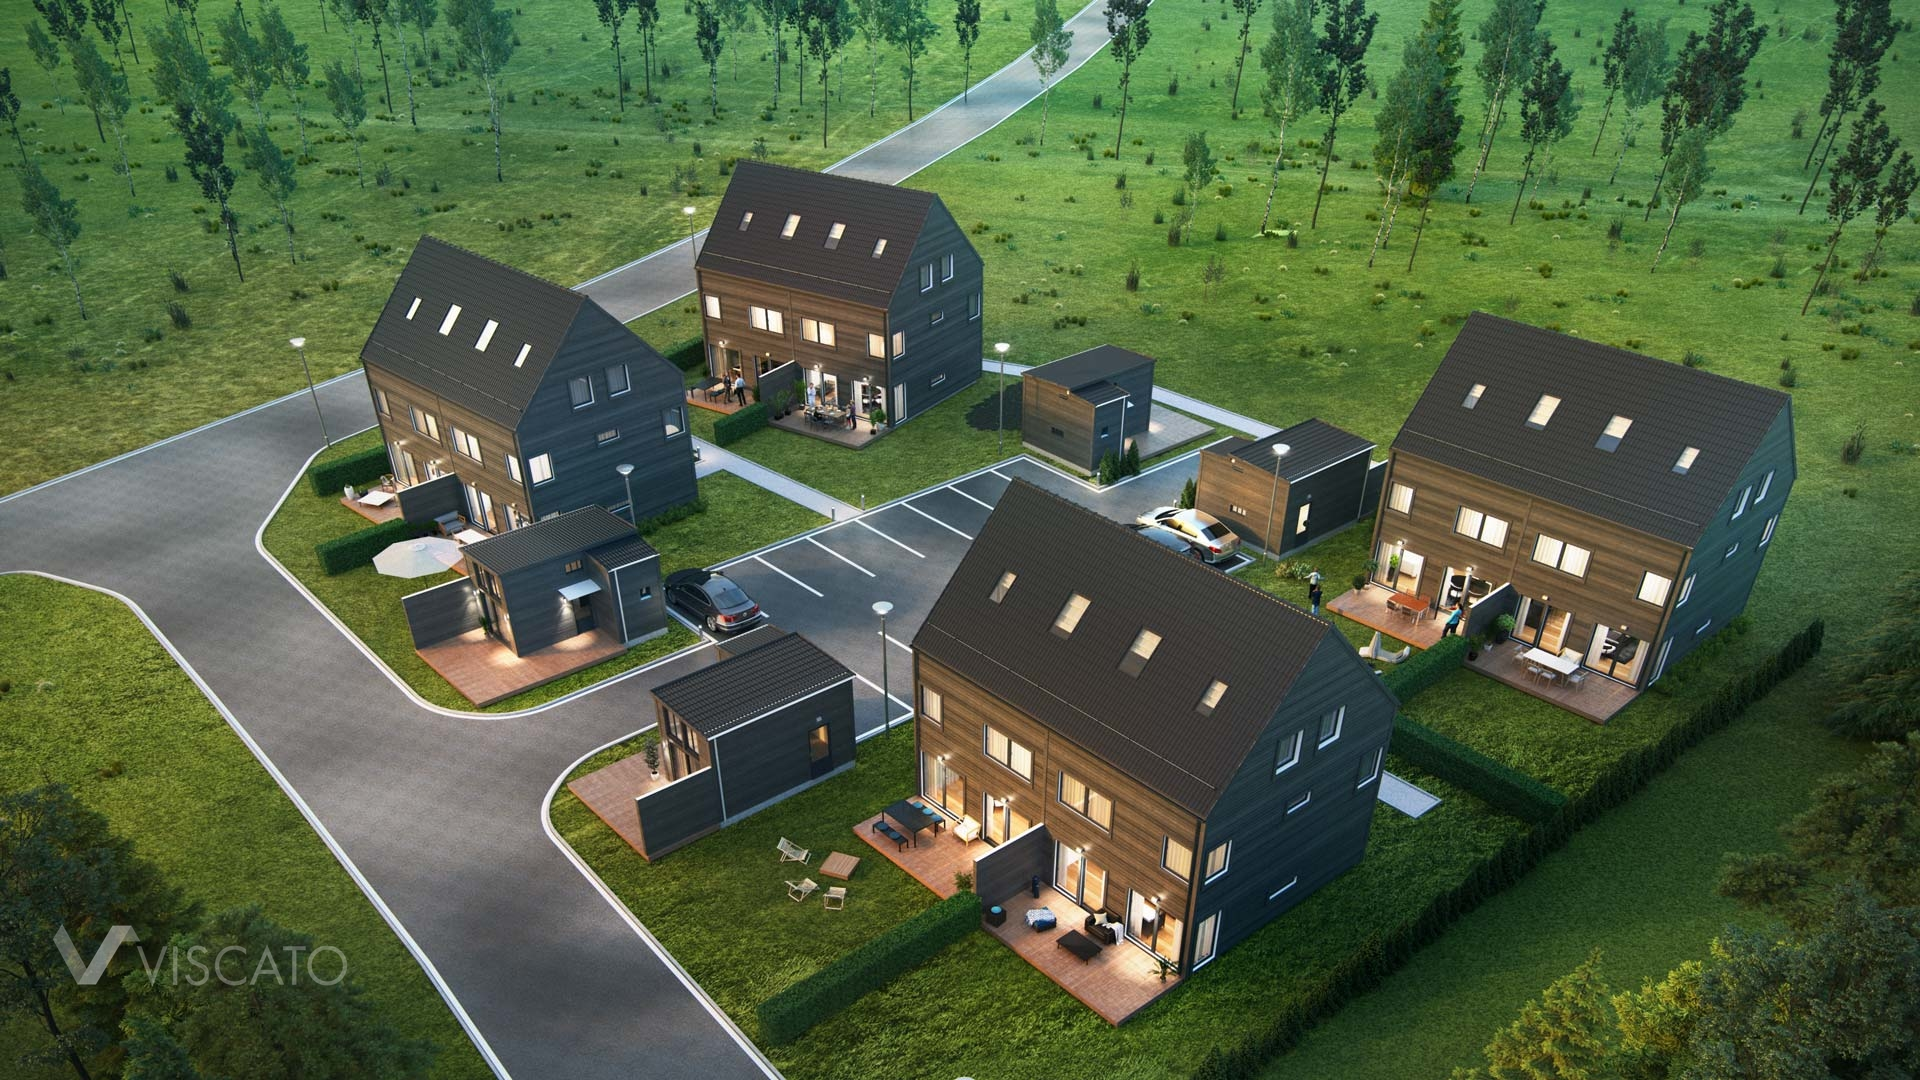 3D architectural visualizations of a housing estate- bird eye view, Viscato